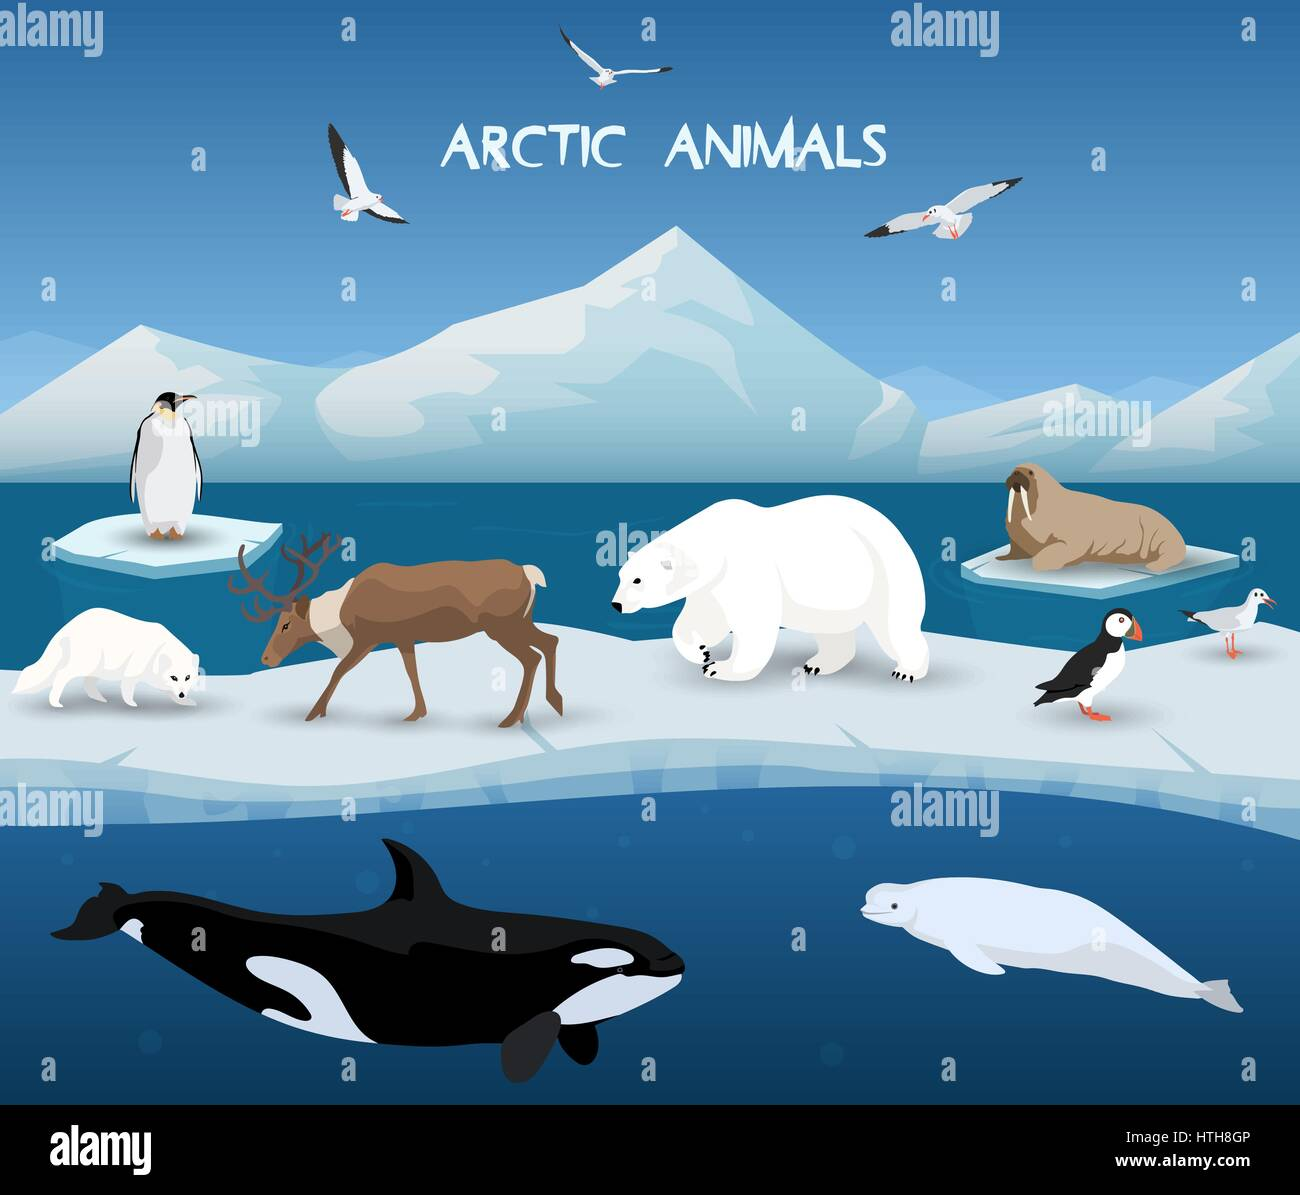 Arctic Animals Character And Background Winter Nature